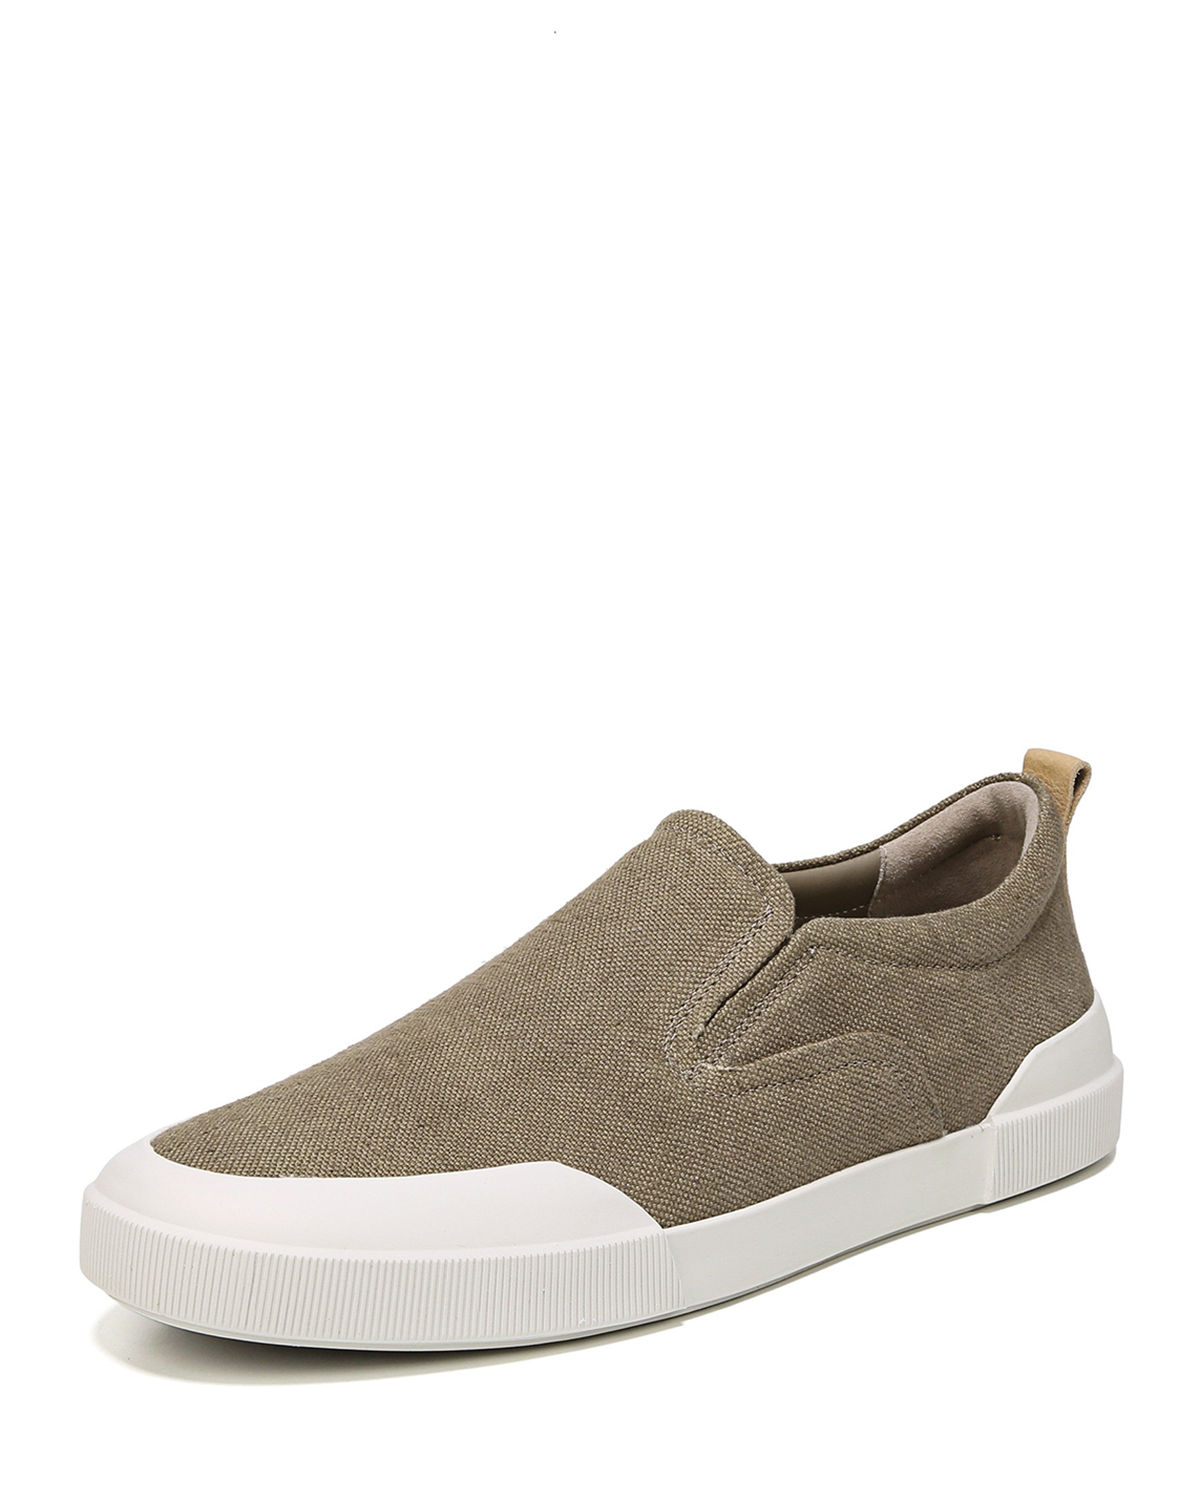 Vince Vernon Slip-On Canvas Sneakers ED33X1vUK7